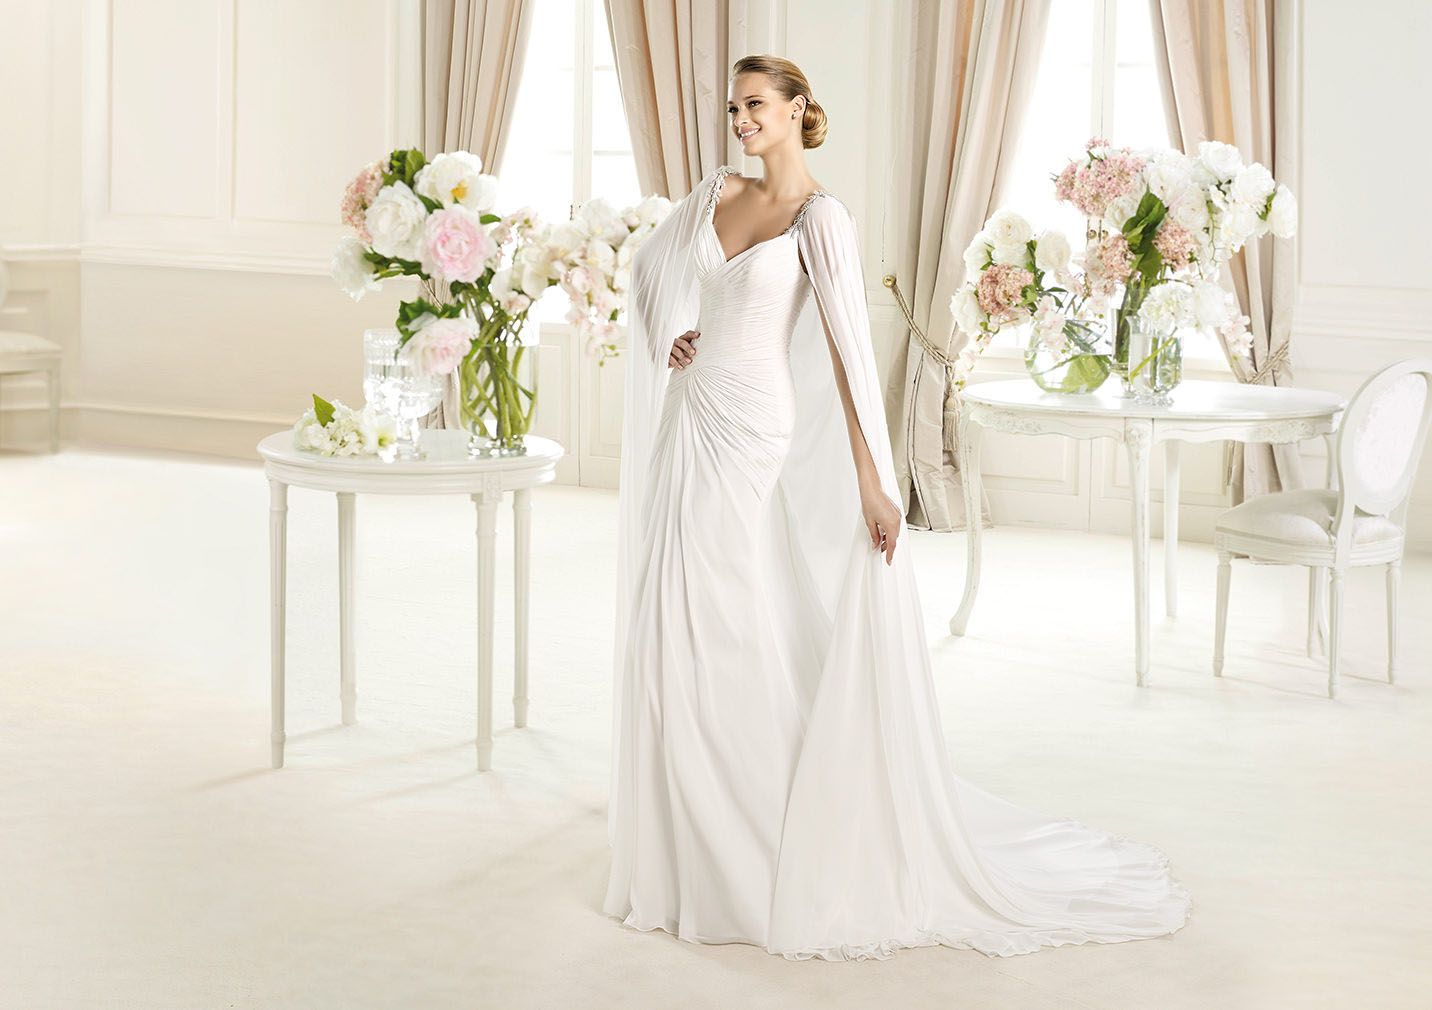 wedding dress shops glasgow | alex | Pinterest | Wedding dress and ...